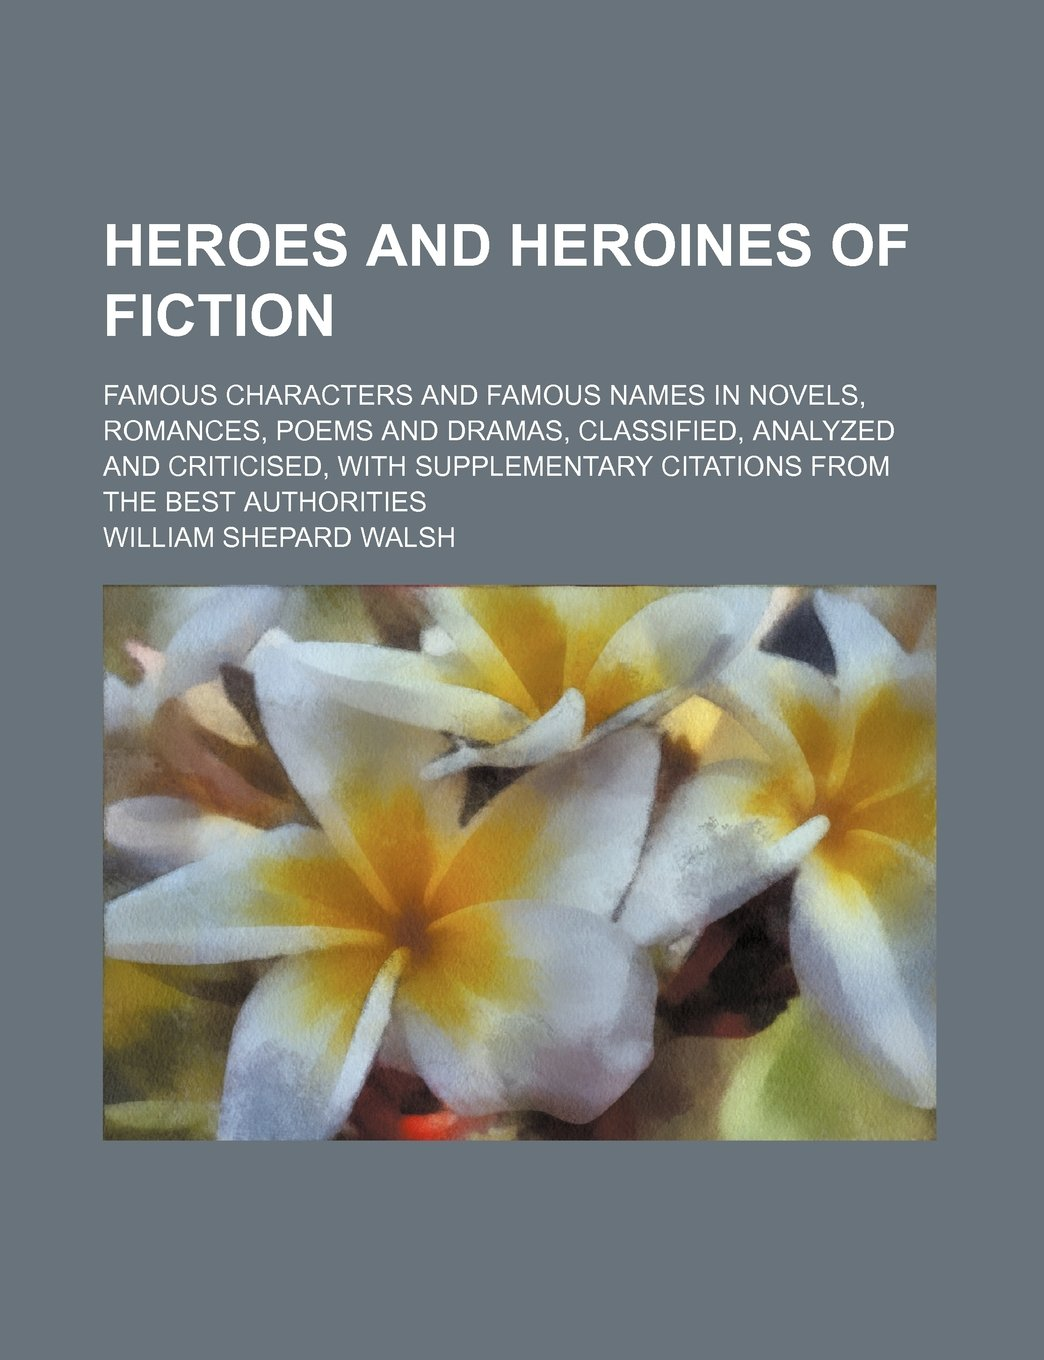 Heroes and heroines of fiction; famous characters and famous names in novels, romances, poems and dramas, classified, analyzed and criticised, with supplementary citations from the best authorities pdf